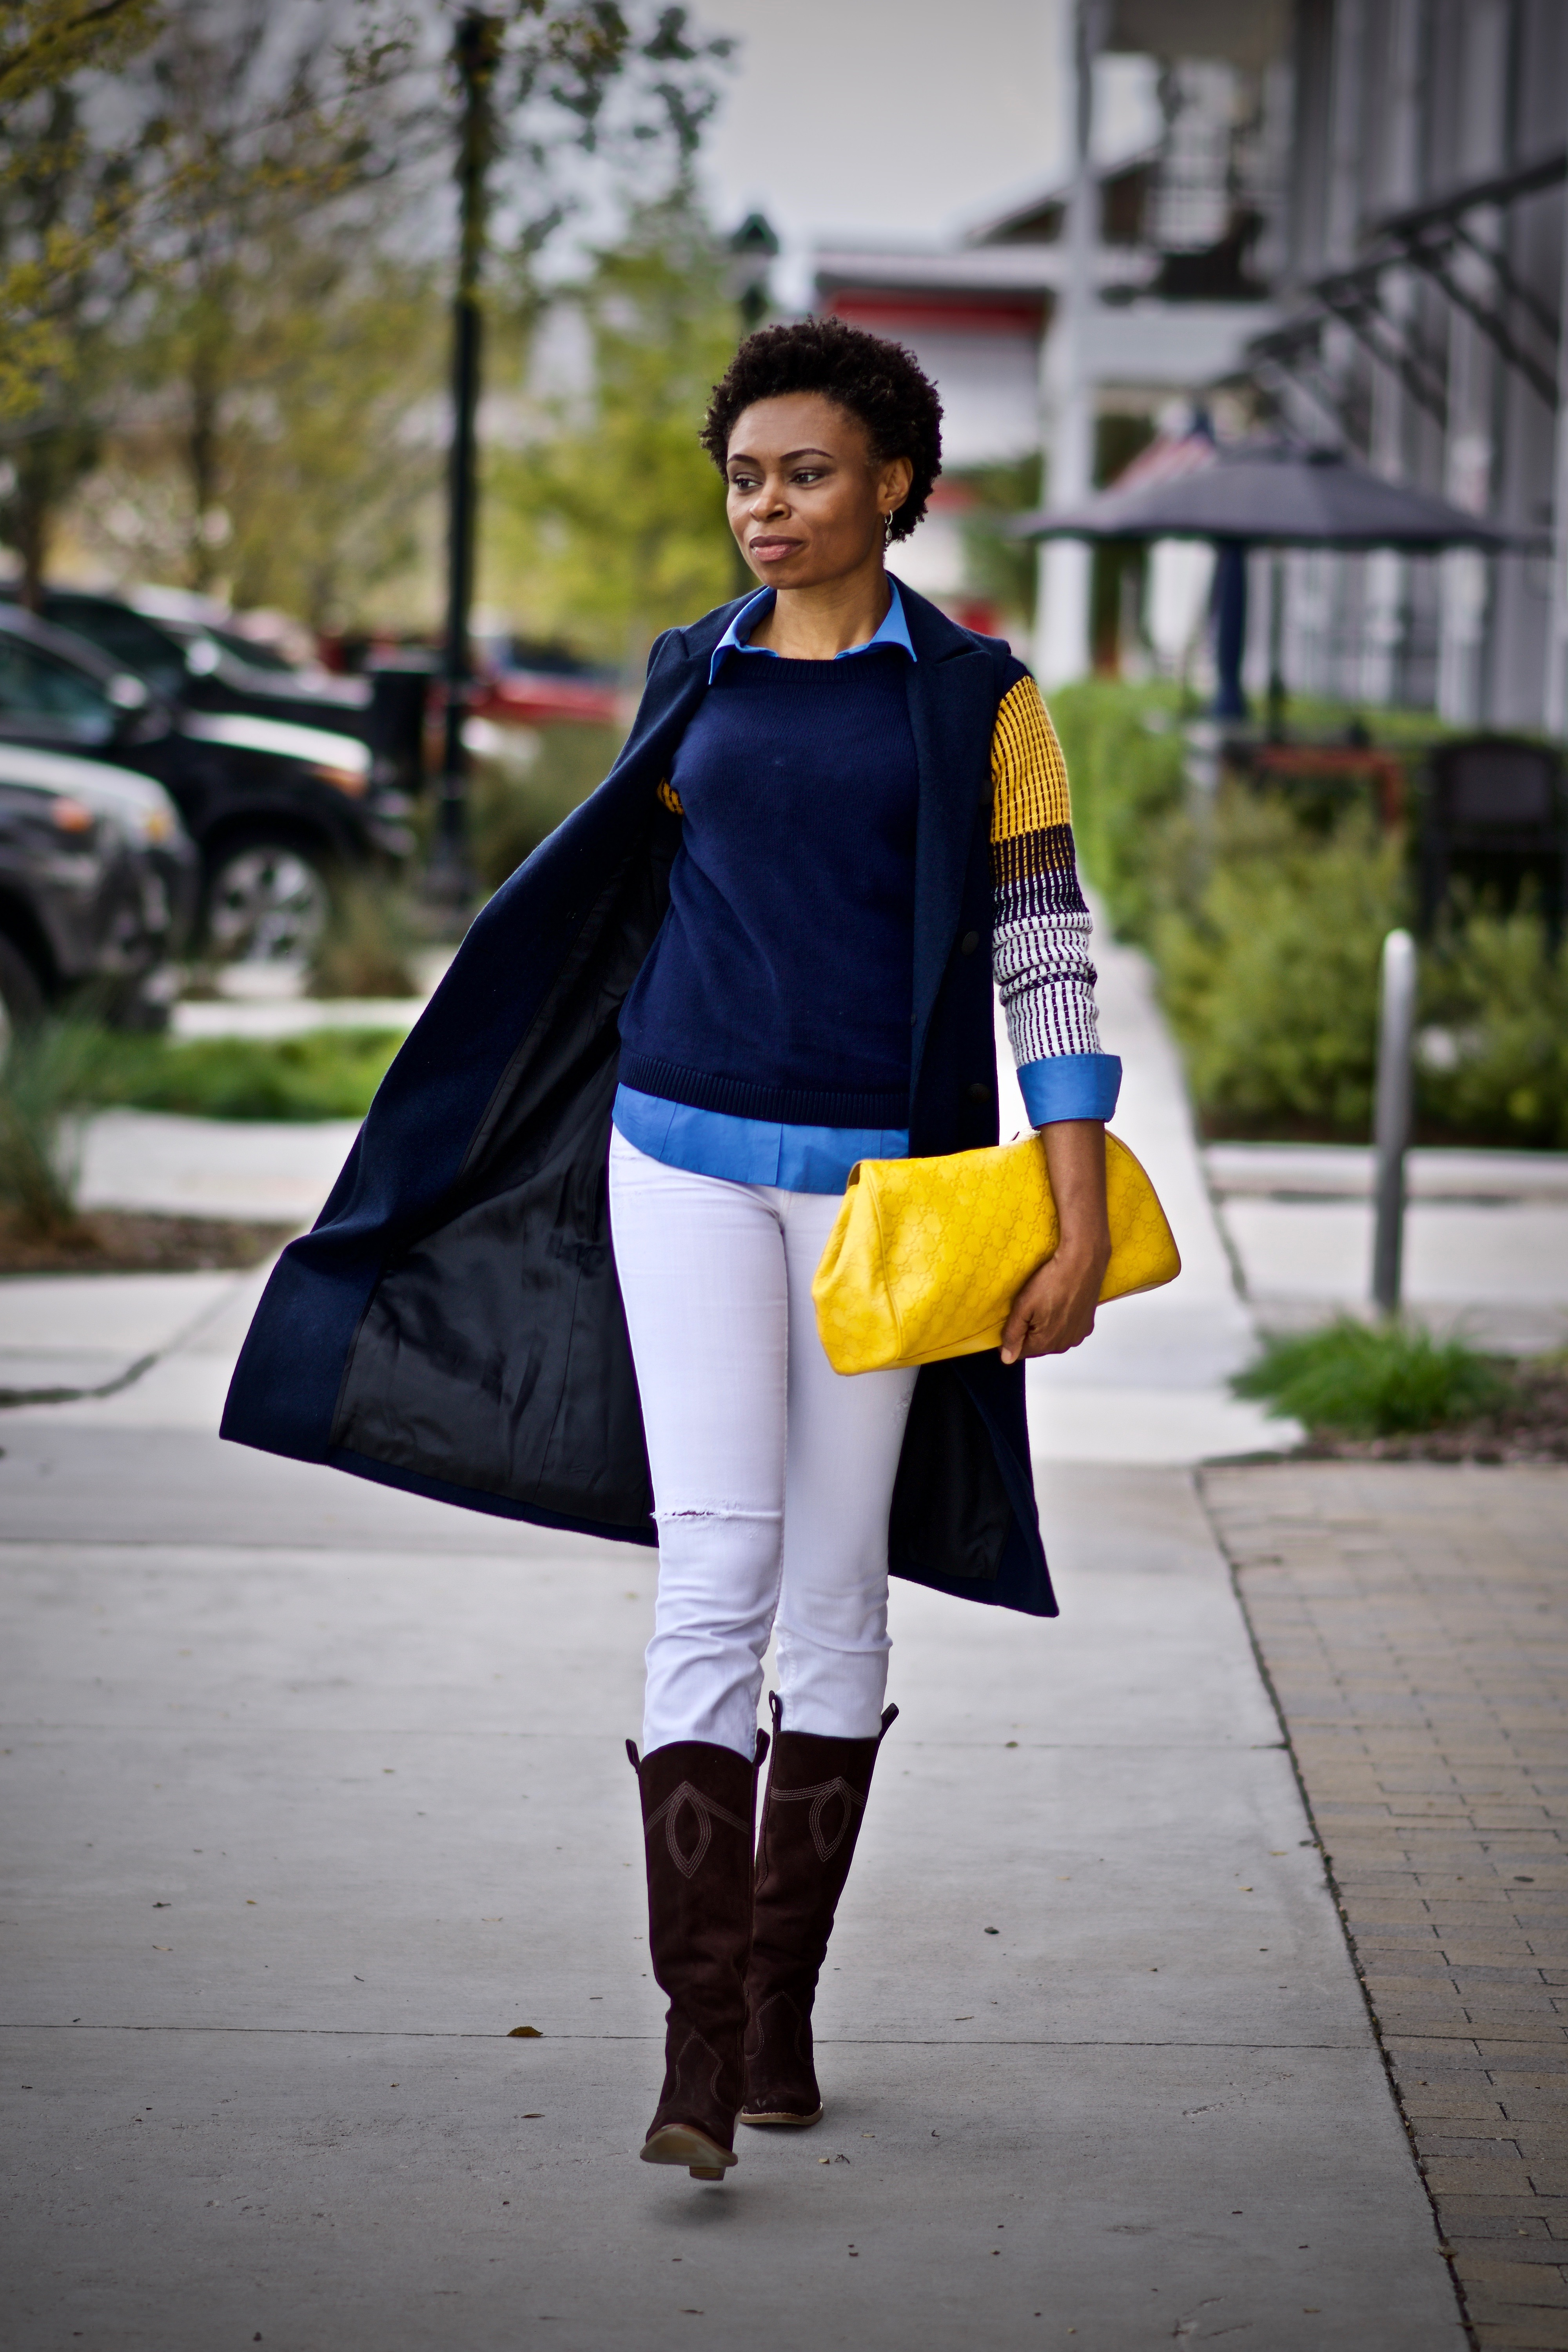 Styling a Contrast sleeve sweater + button down shirt